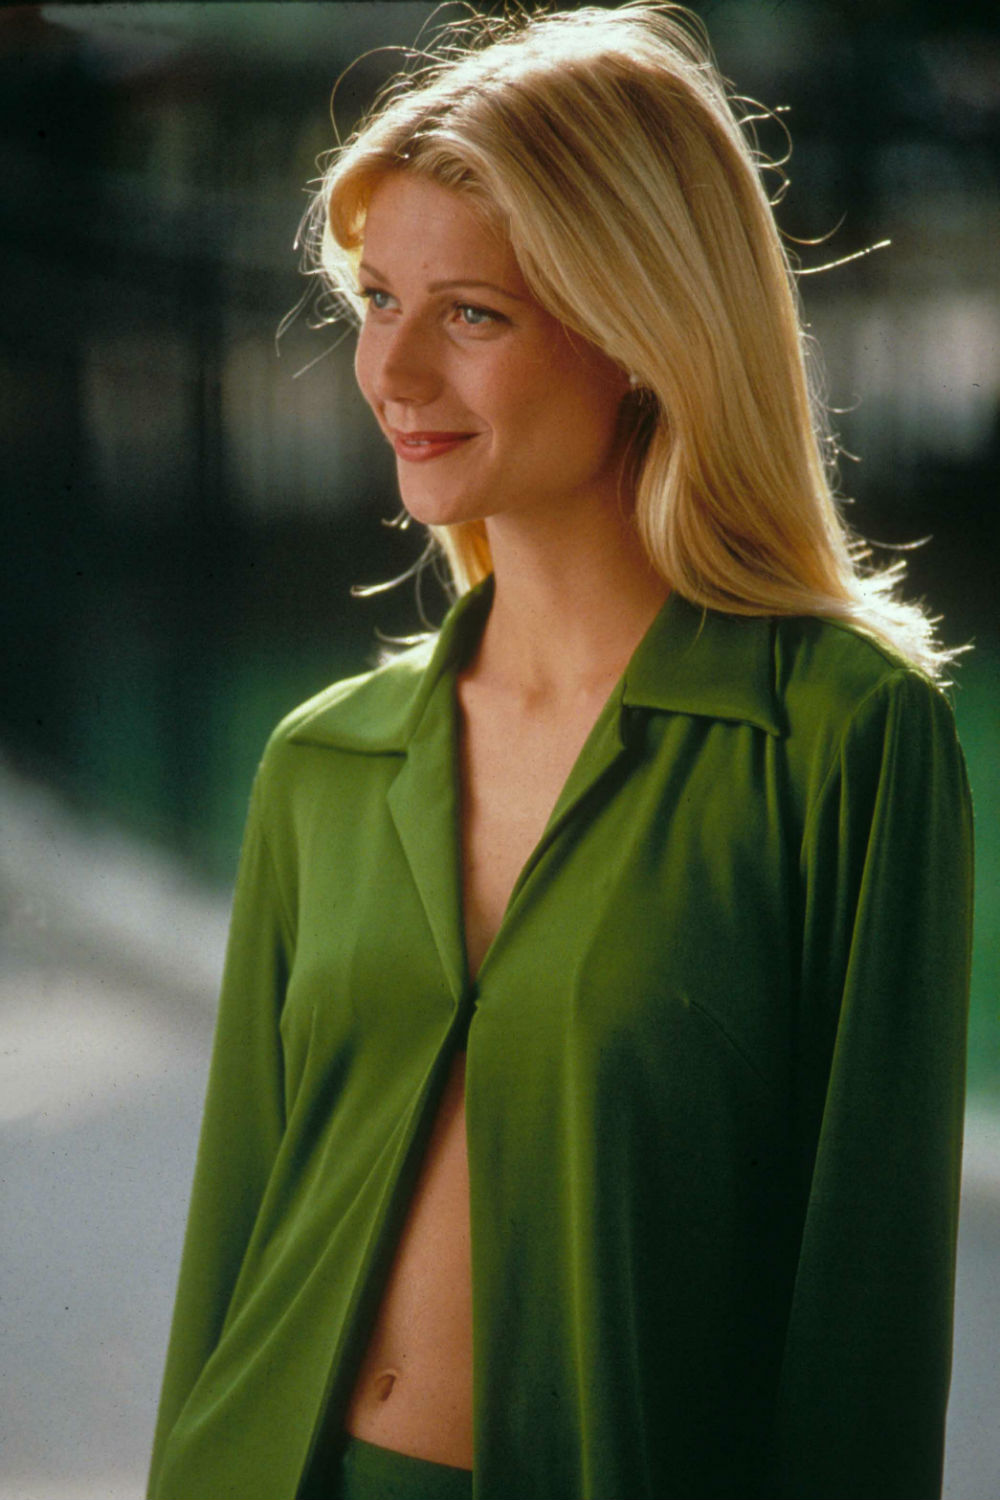 6 Films That Gwyneth Paltrow Totally Owned